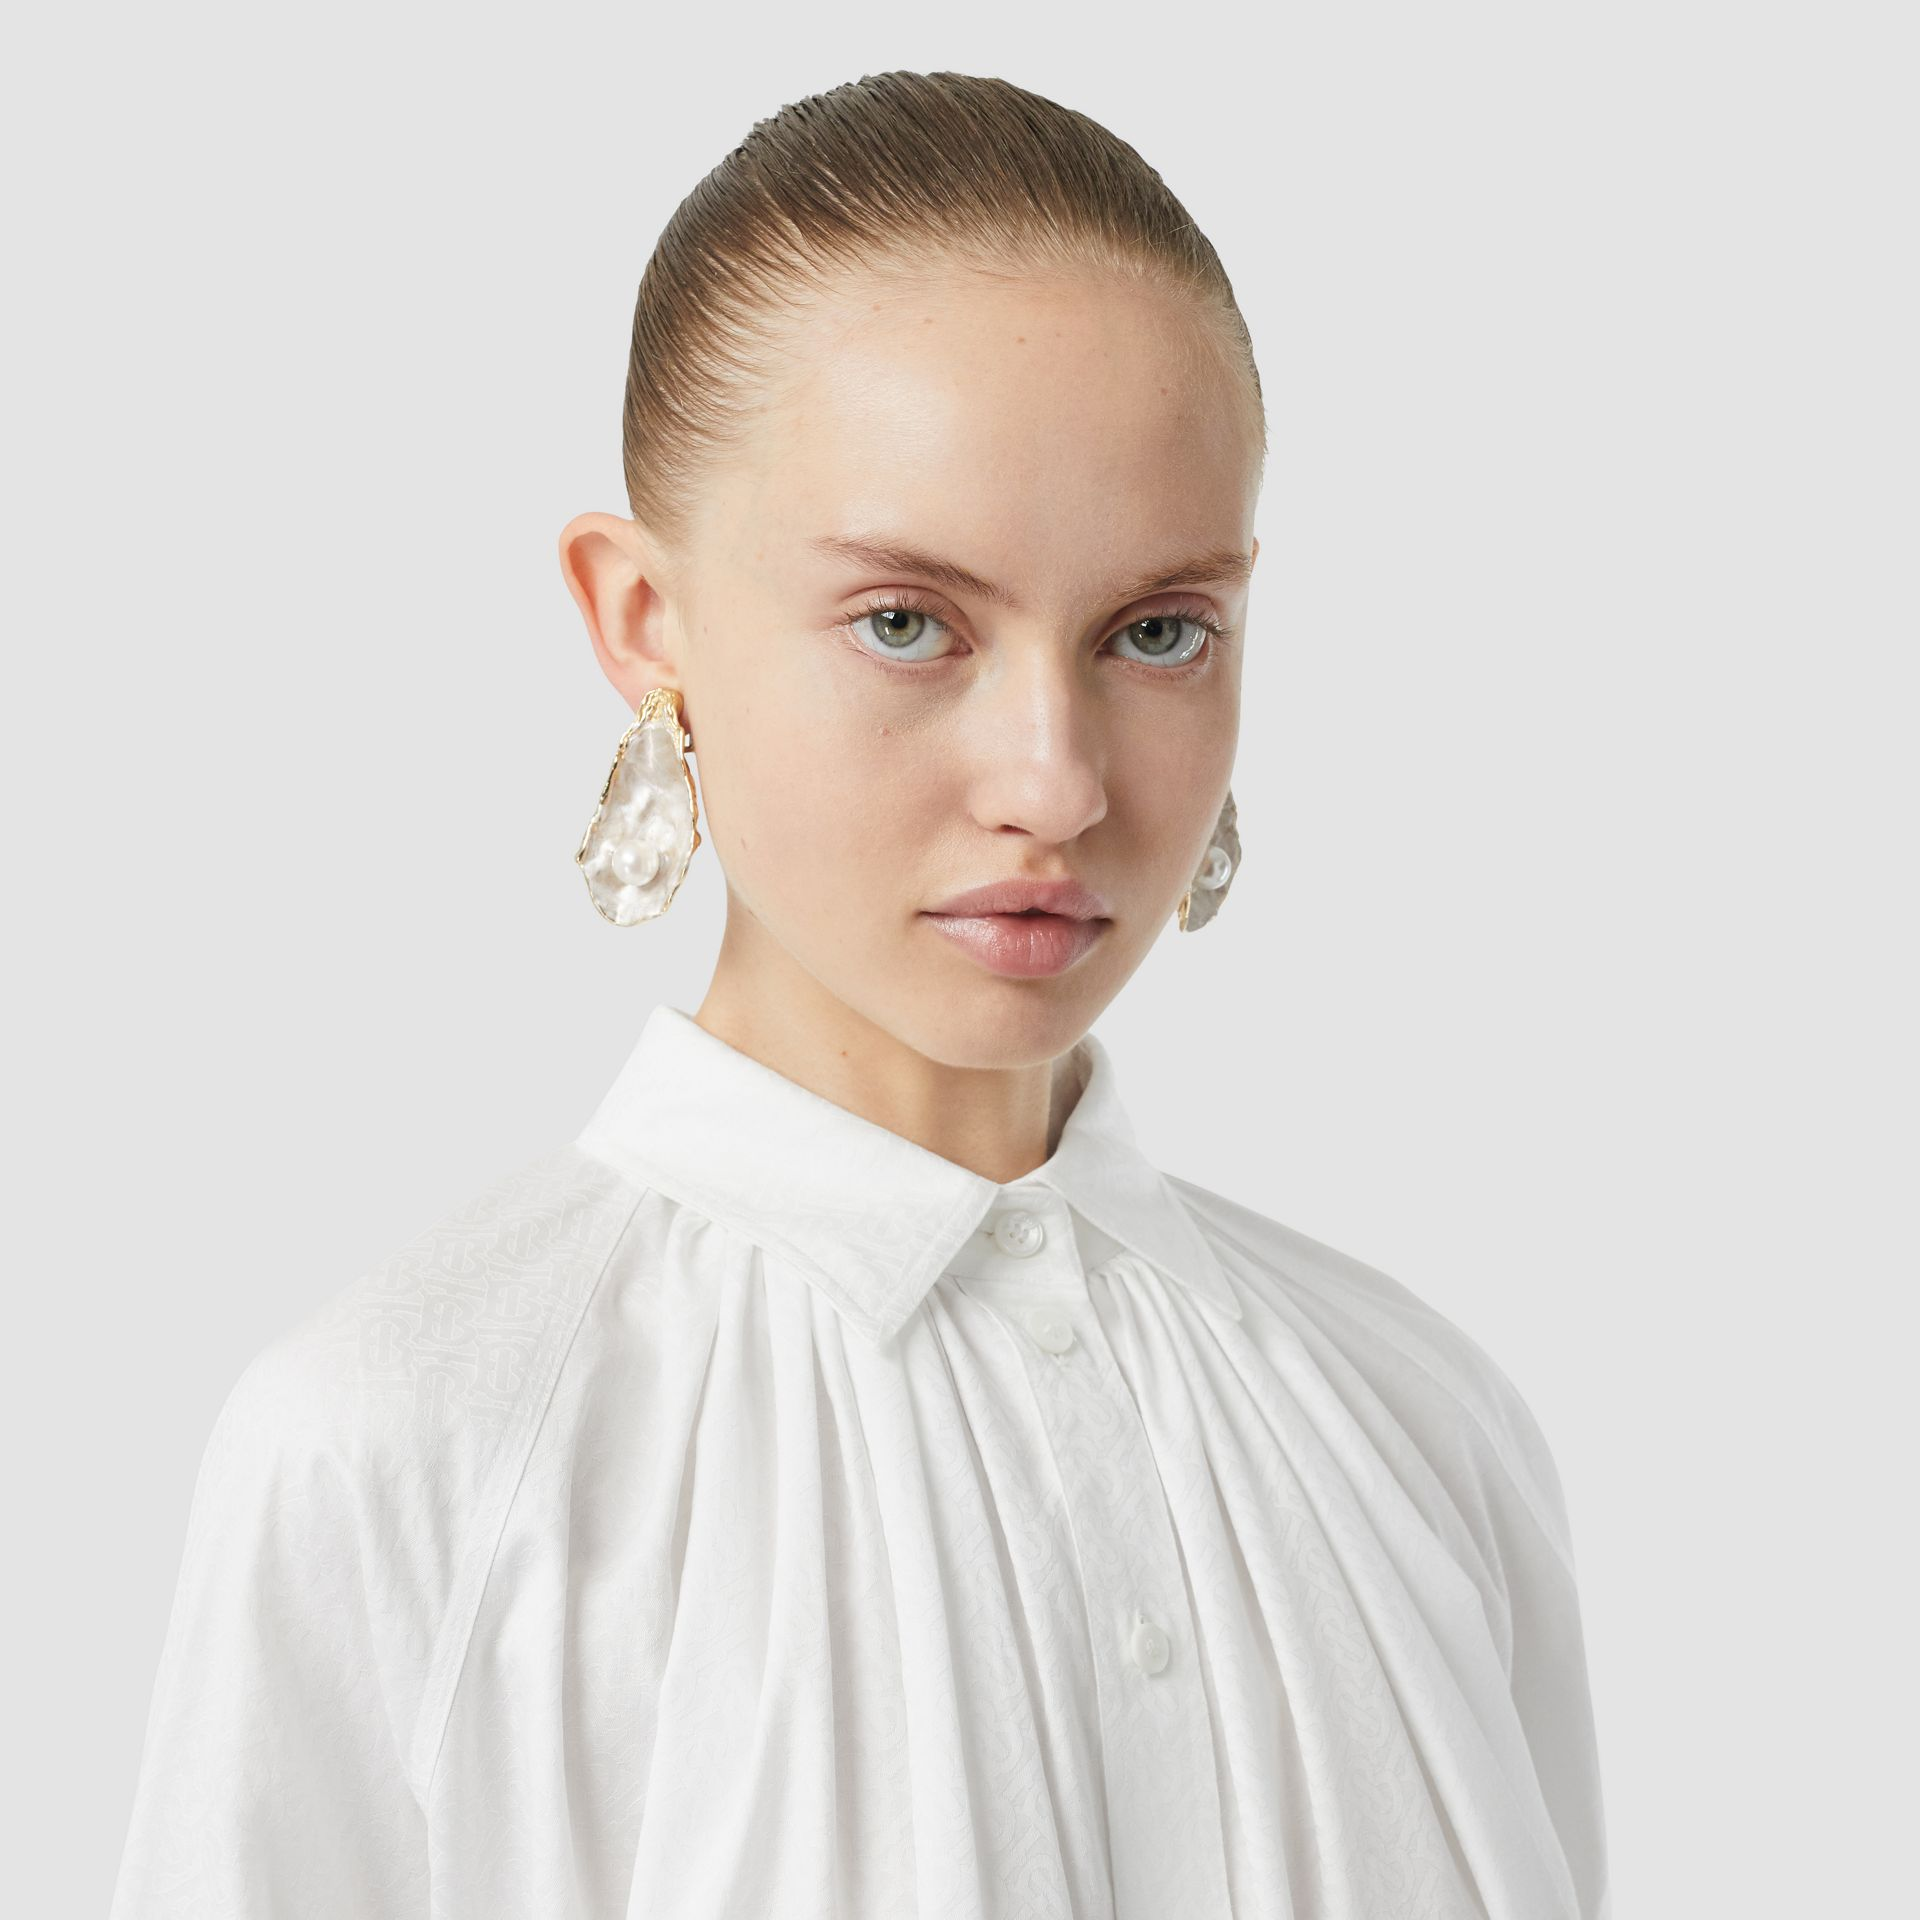 Monogram Cotton Jacquard Oversized Shirt in Optic White - Women | Burberry Singapore - gallery image 7